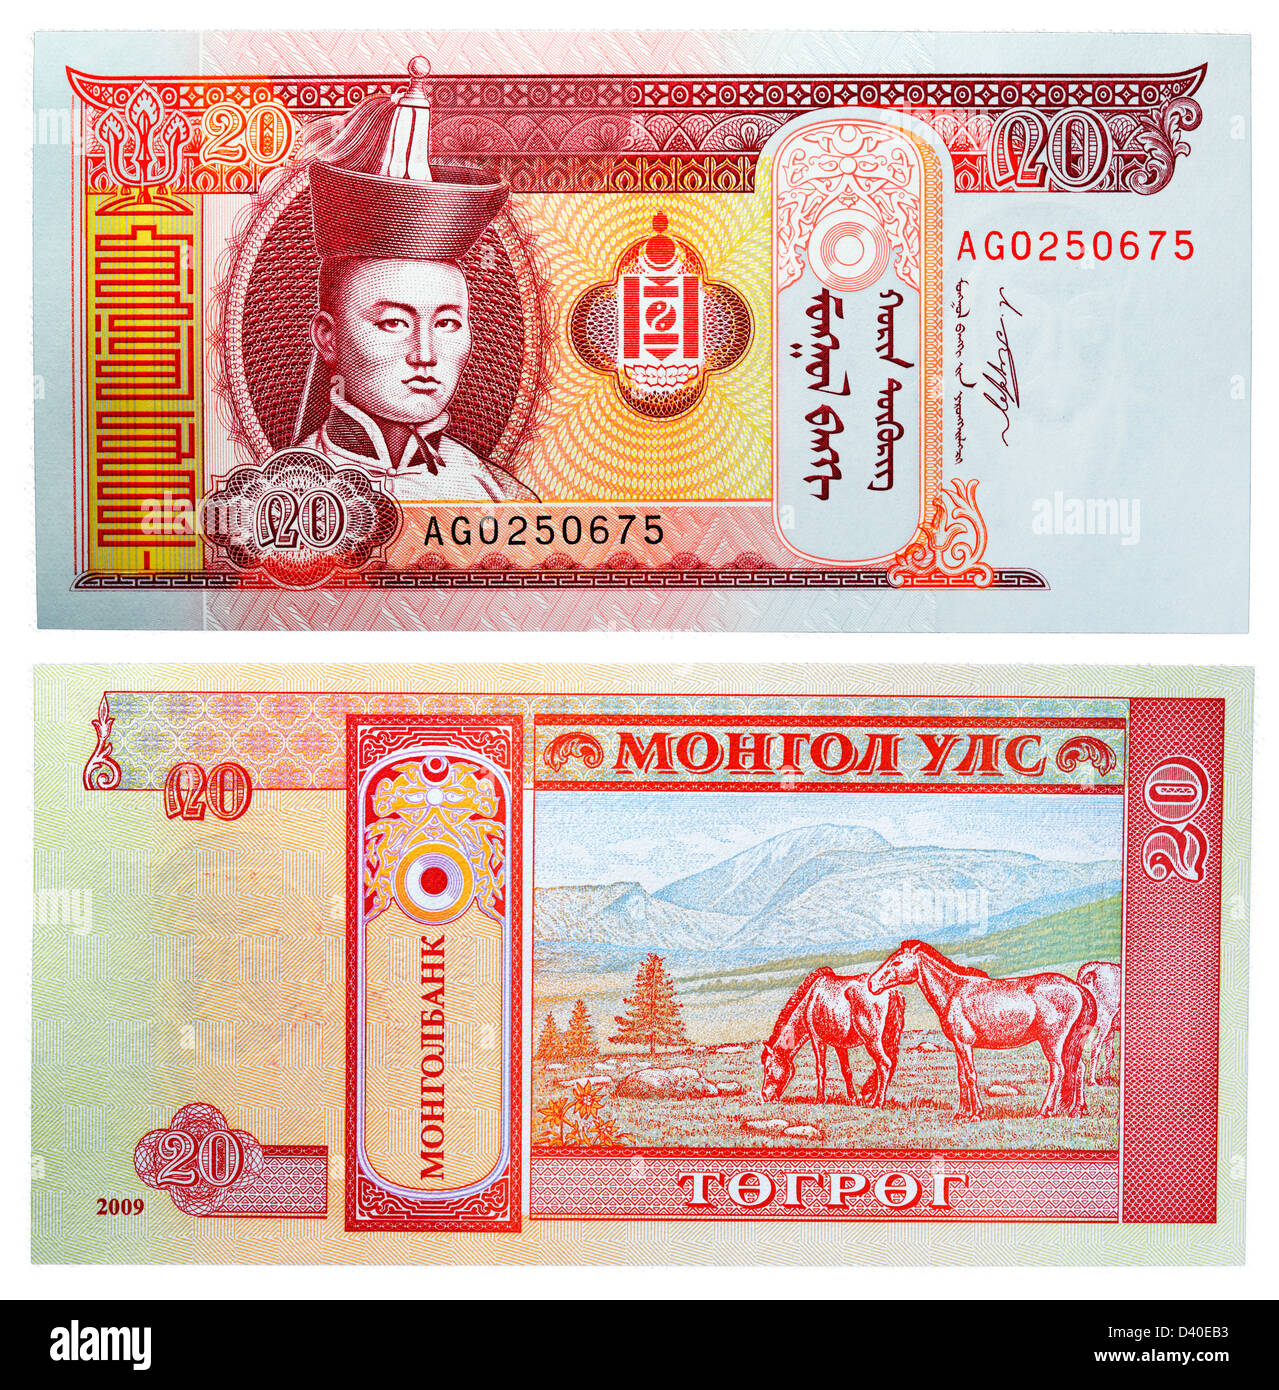 20 Tugrik, banknote, Sukhbaatar and horses in steppe, Mongolia, 2009 - Stock Image